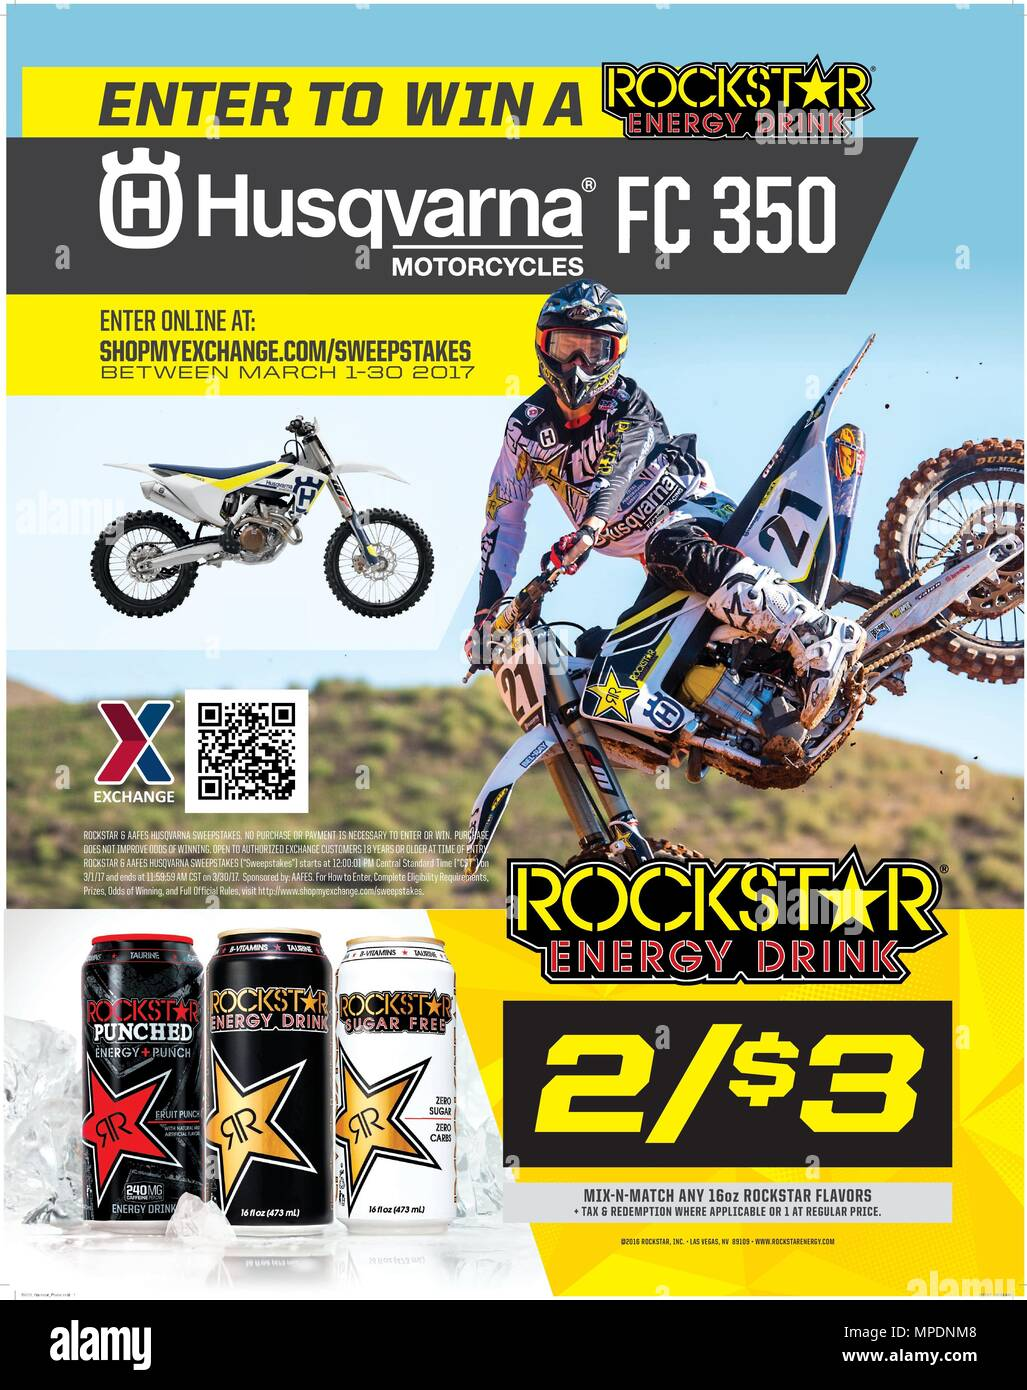 Army & Air Force Exchange Service shoppers can enter the Rockstar Motorcycle Sweepstakes March 1 through 30 for an opportunity to win a Rockstar Husqvarna FC 350 motorcycle, valued at $9,299. Authorized shoppers 18 and older can enter at www.shopmyexchange.com/sweepstakes. - Stock Image